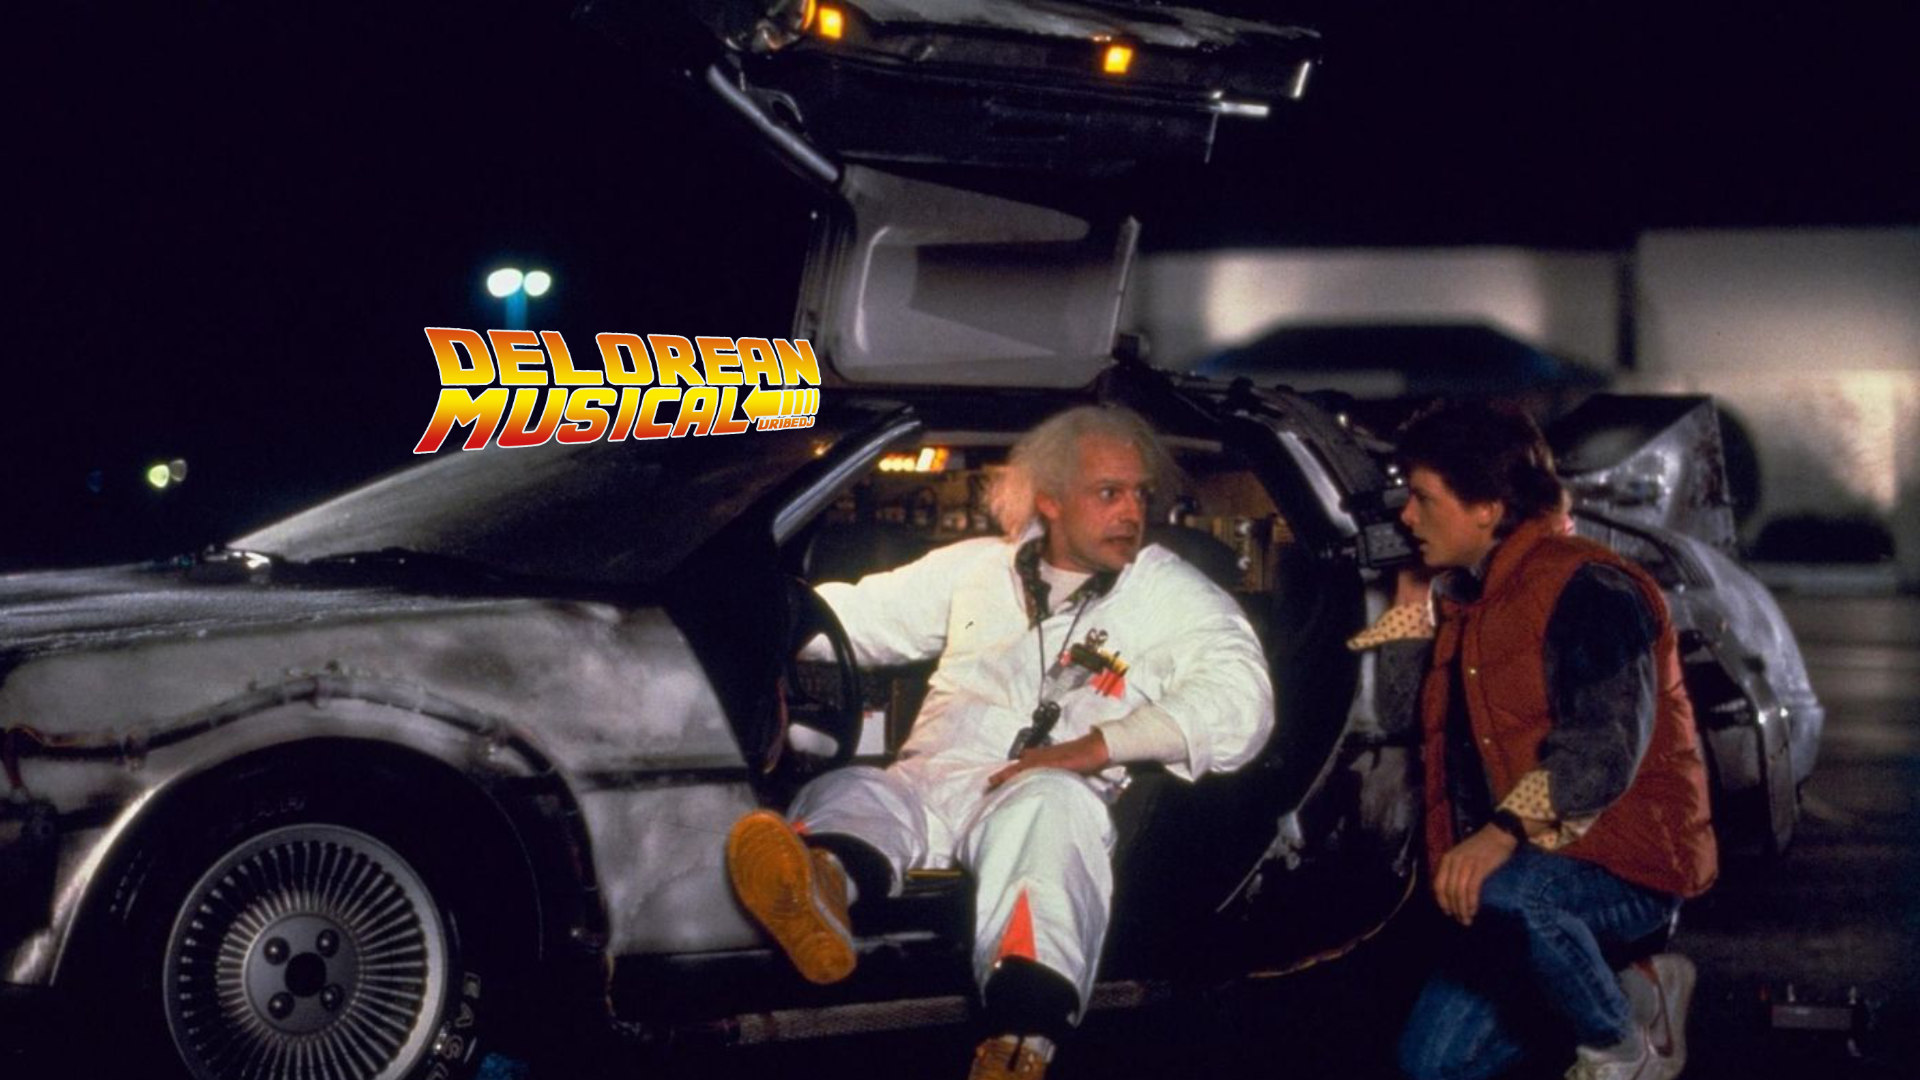 Delorean musical episodio 2 (la canción que no iba a existir)